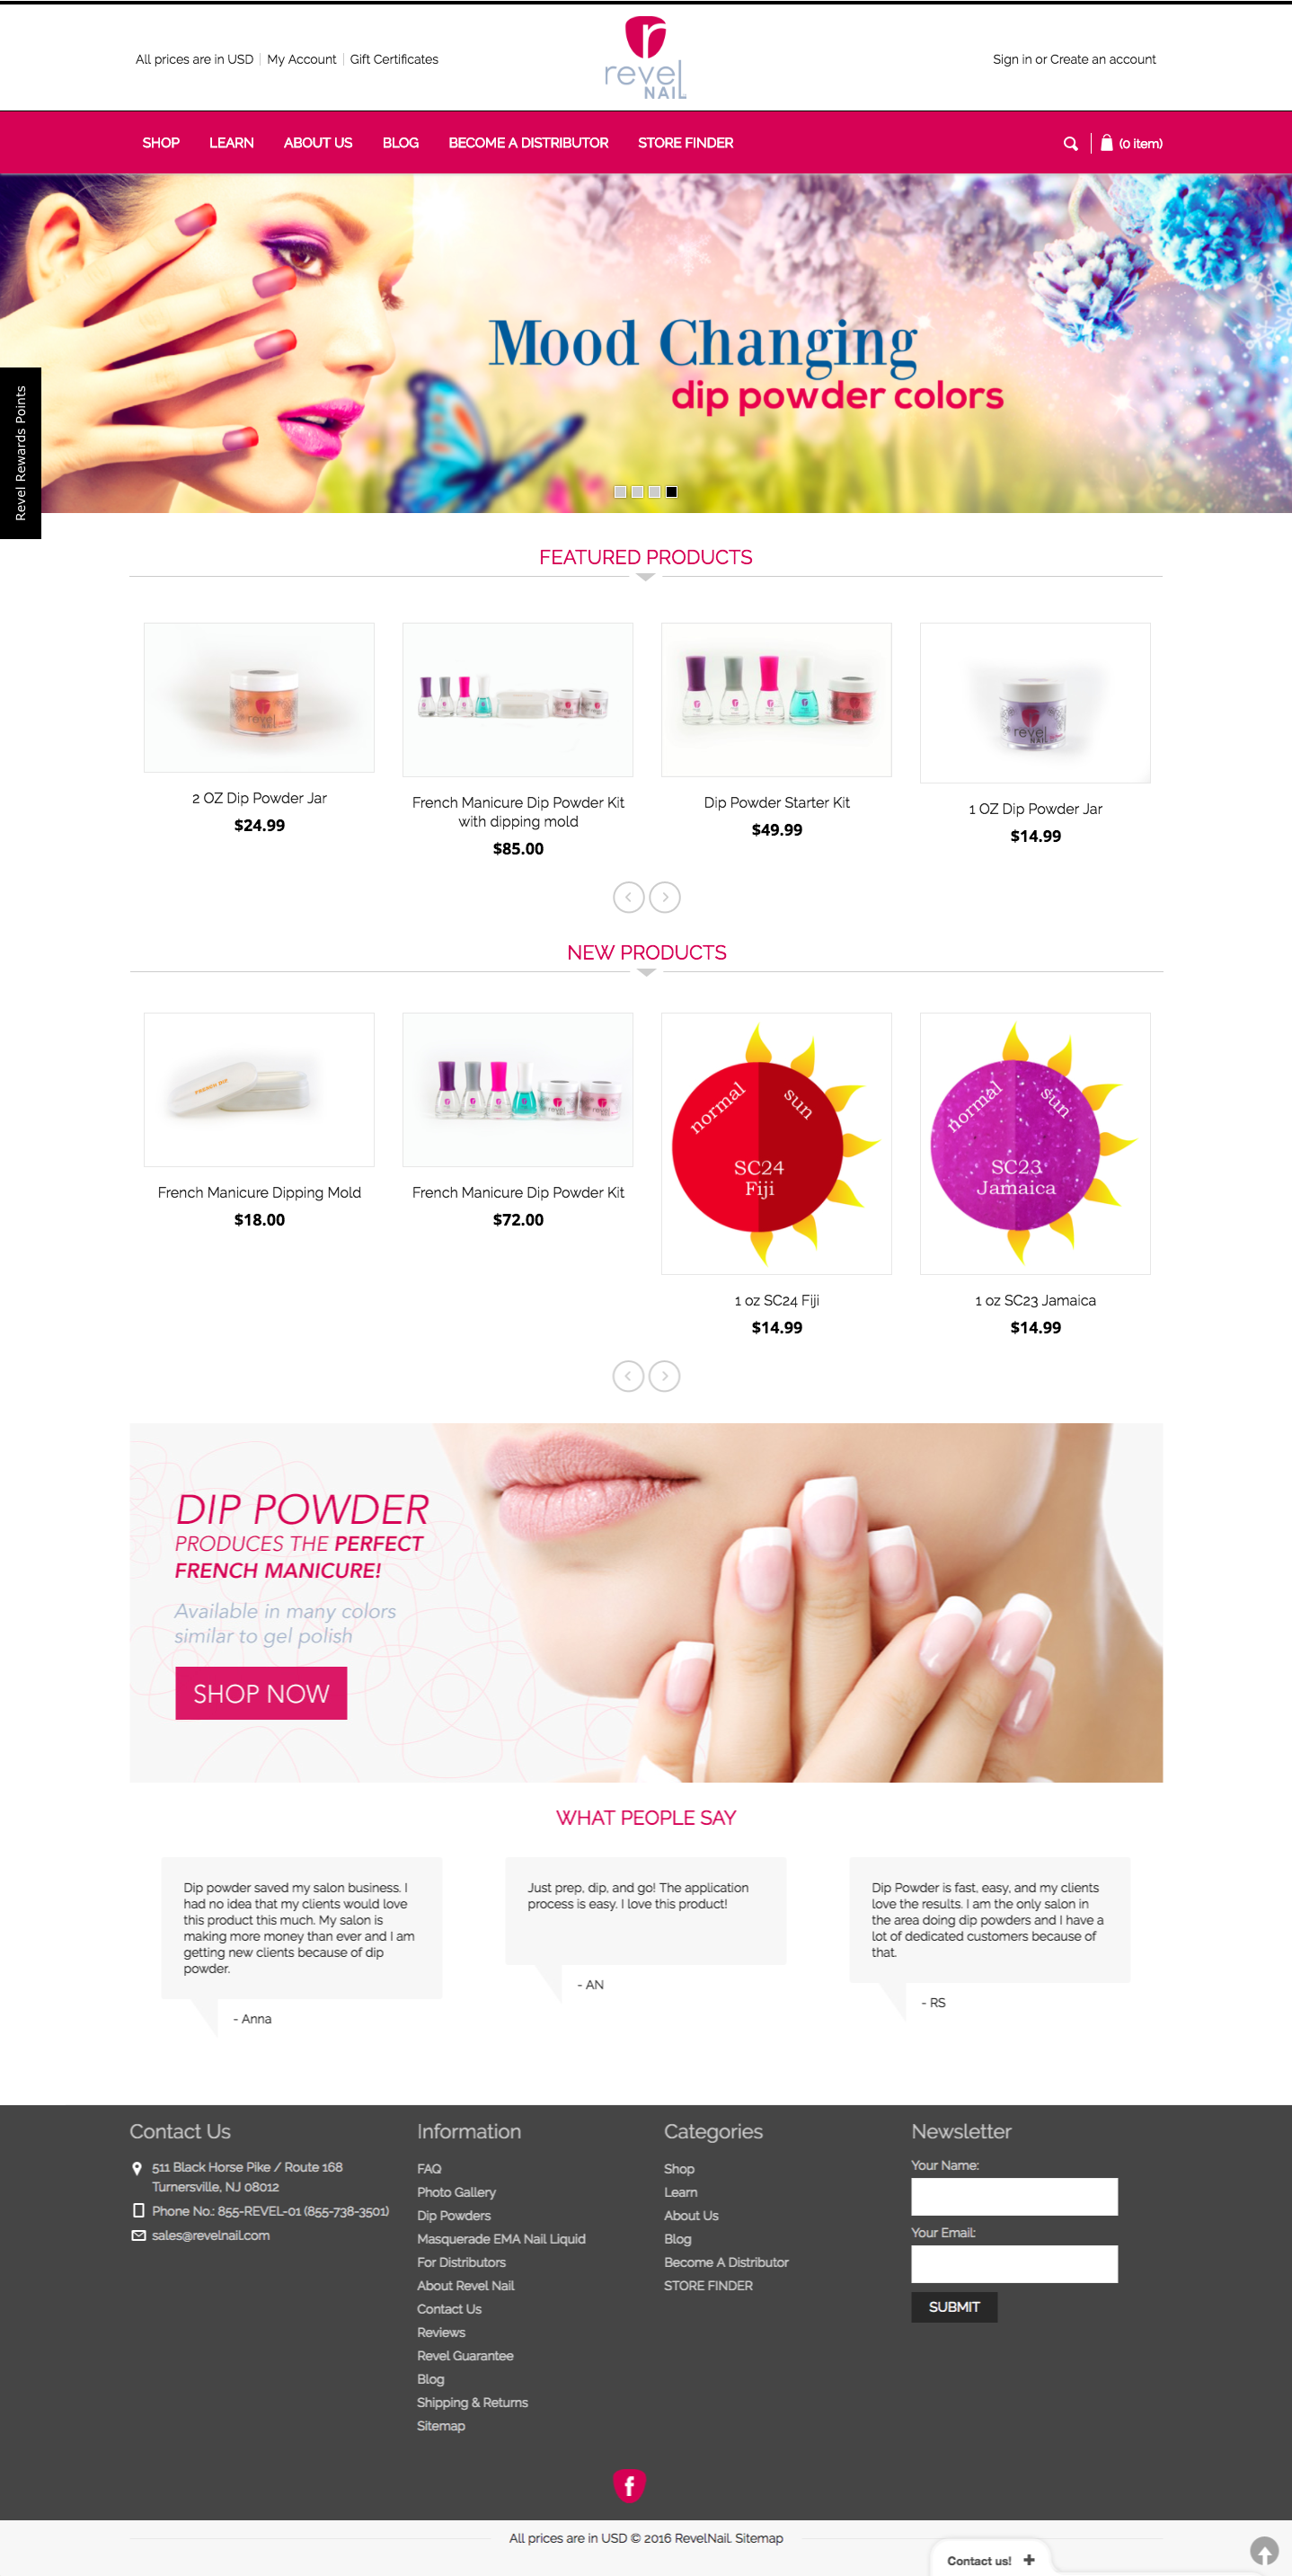 Revel Nail S Revel Rewards Adds A Level Of Sophistication To Their Loyalty Program That Wouldn T Be There Revel Nail Dip Revel Nail Dip Powder Dip Powder Nails